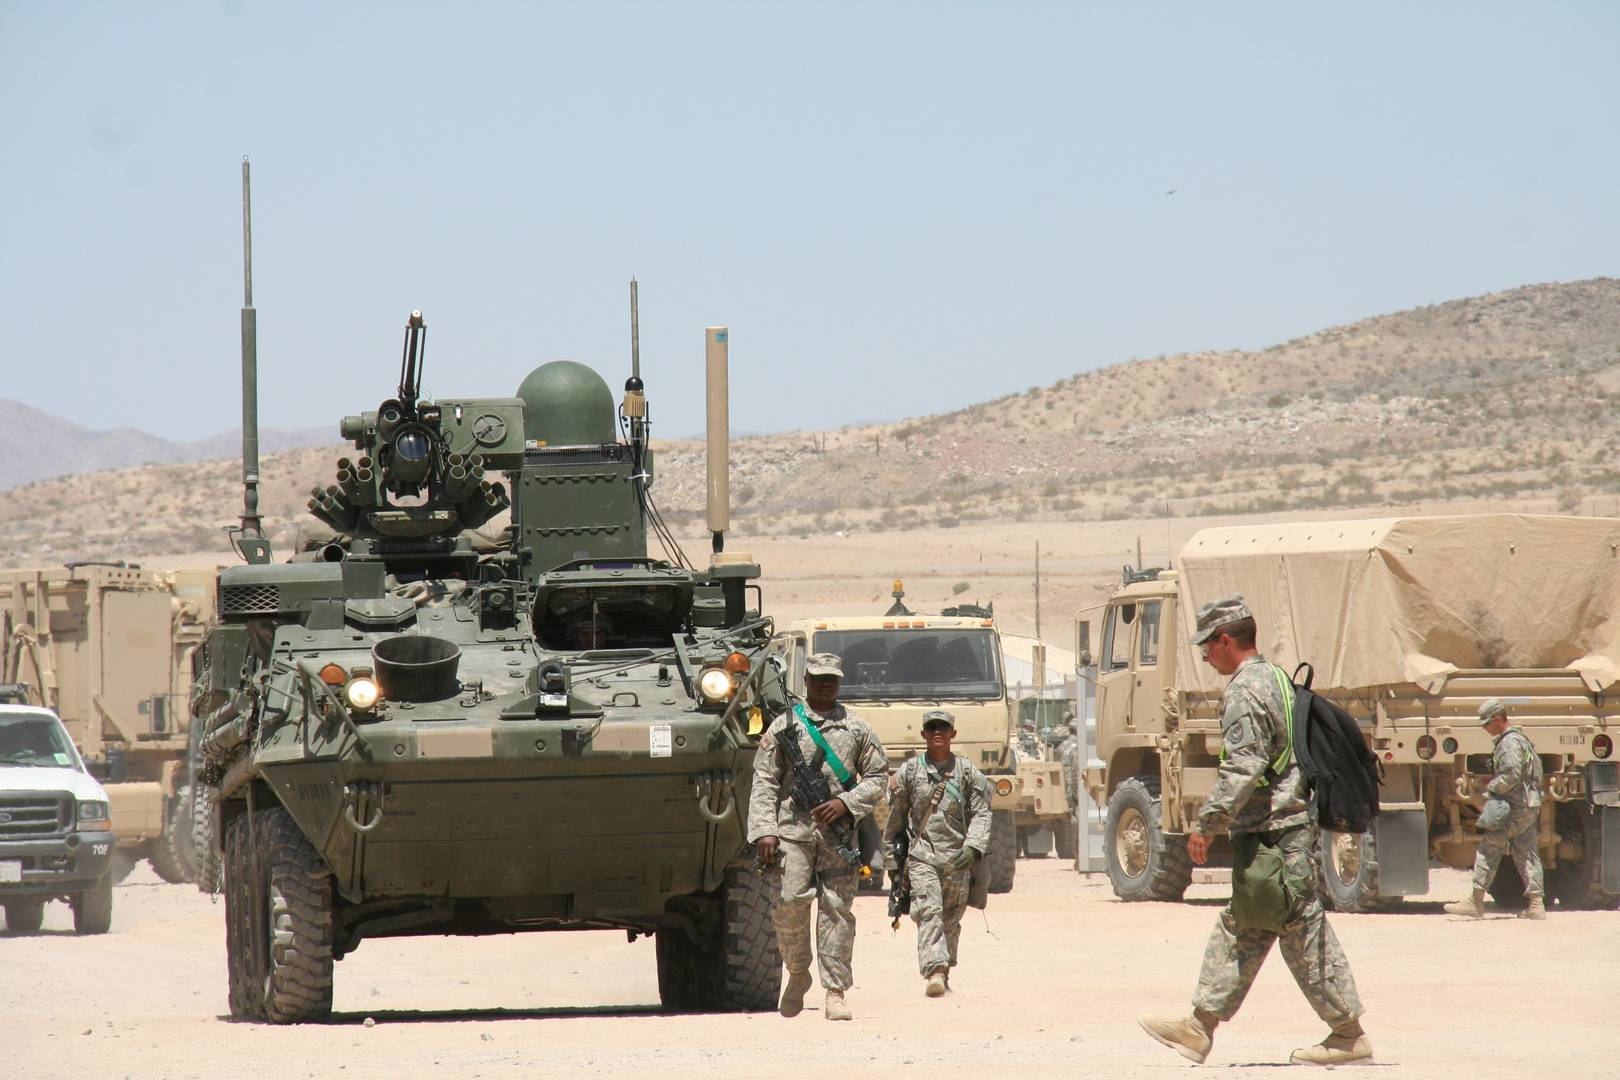 Warfighter Information Network-Tactical (WIN-T) Increment 2 integrated onto Stryker vehicles,